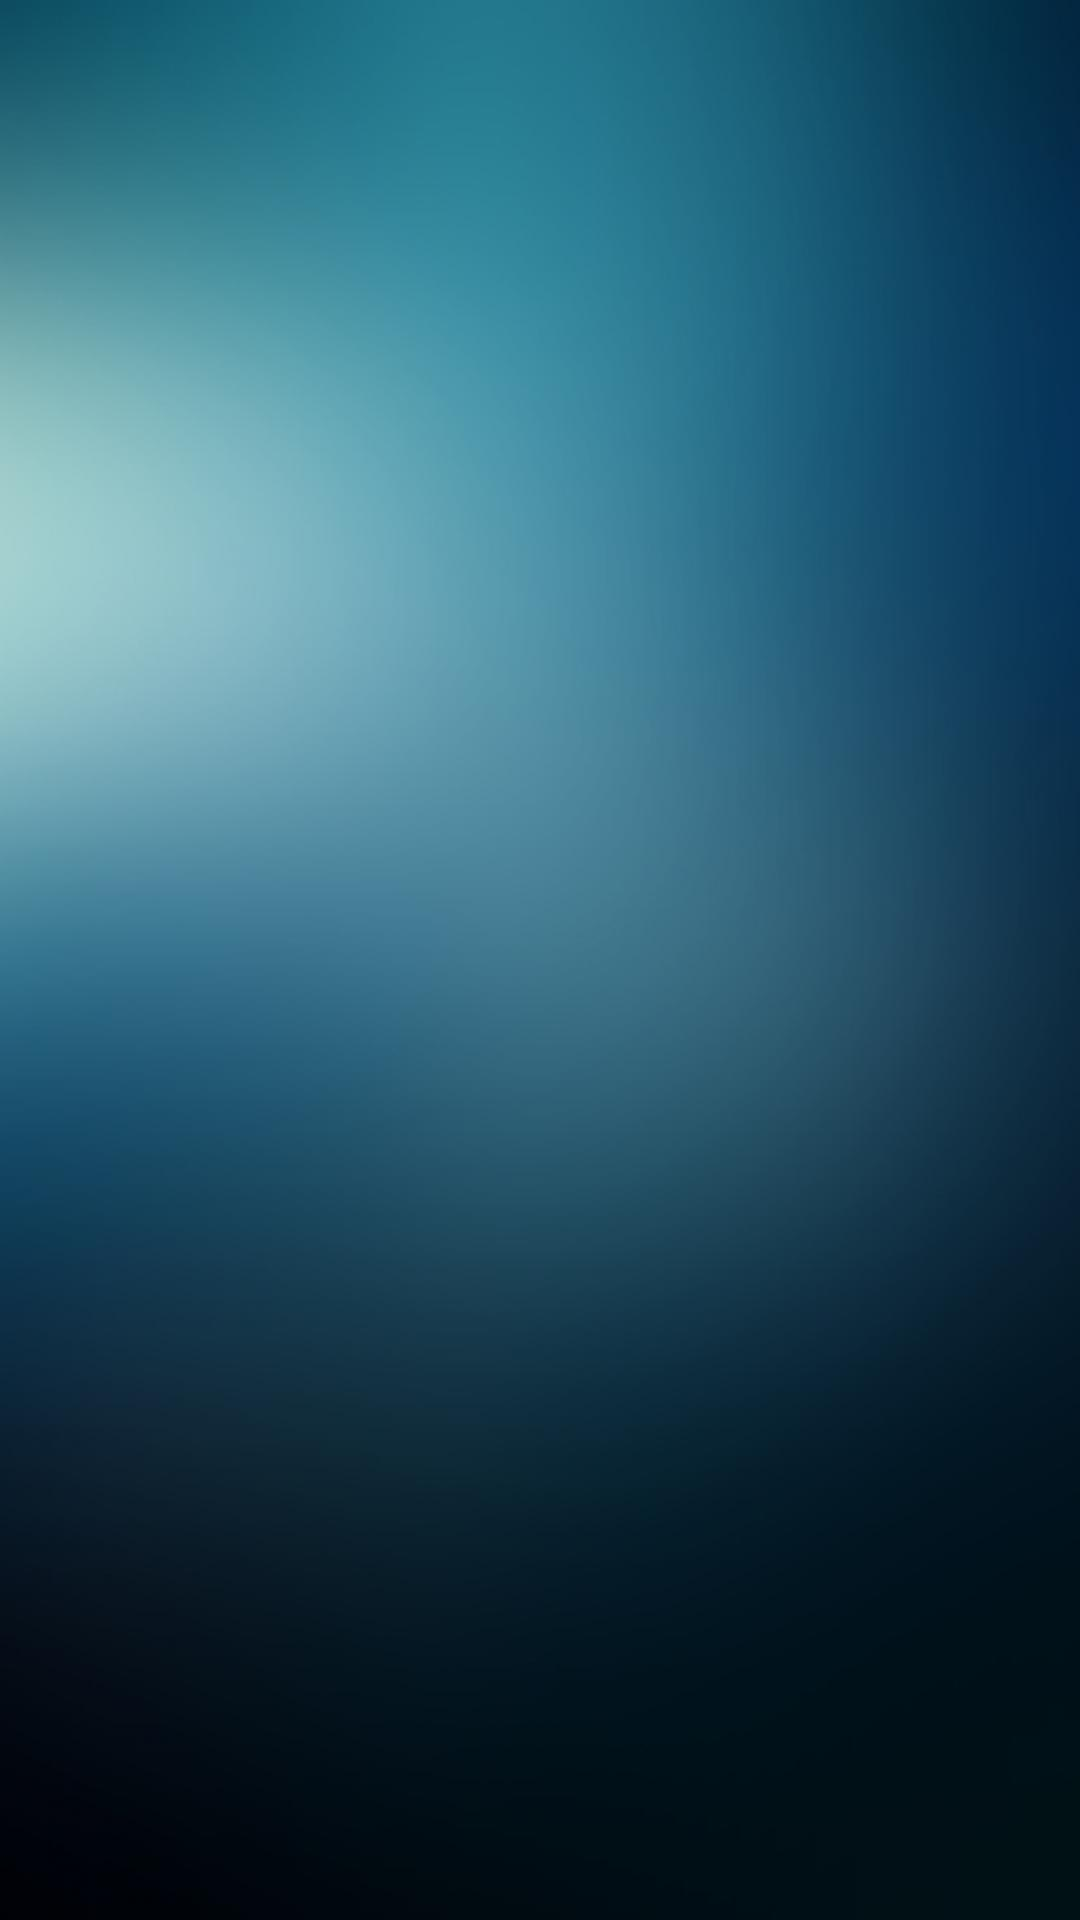 Iphone 5 wallpaper hd retina blue